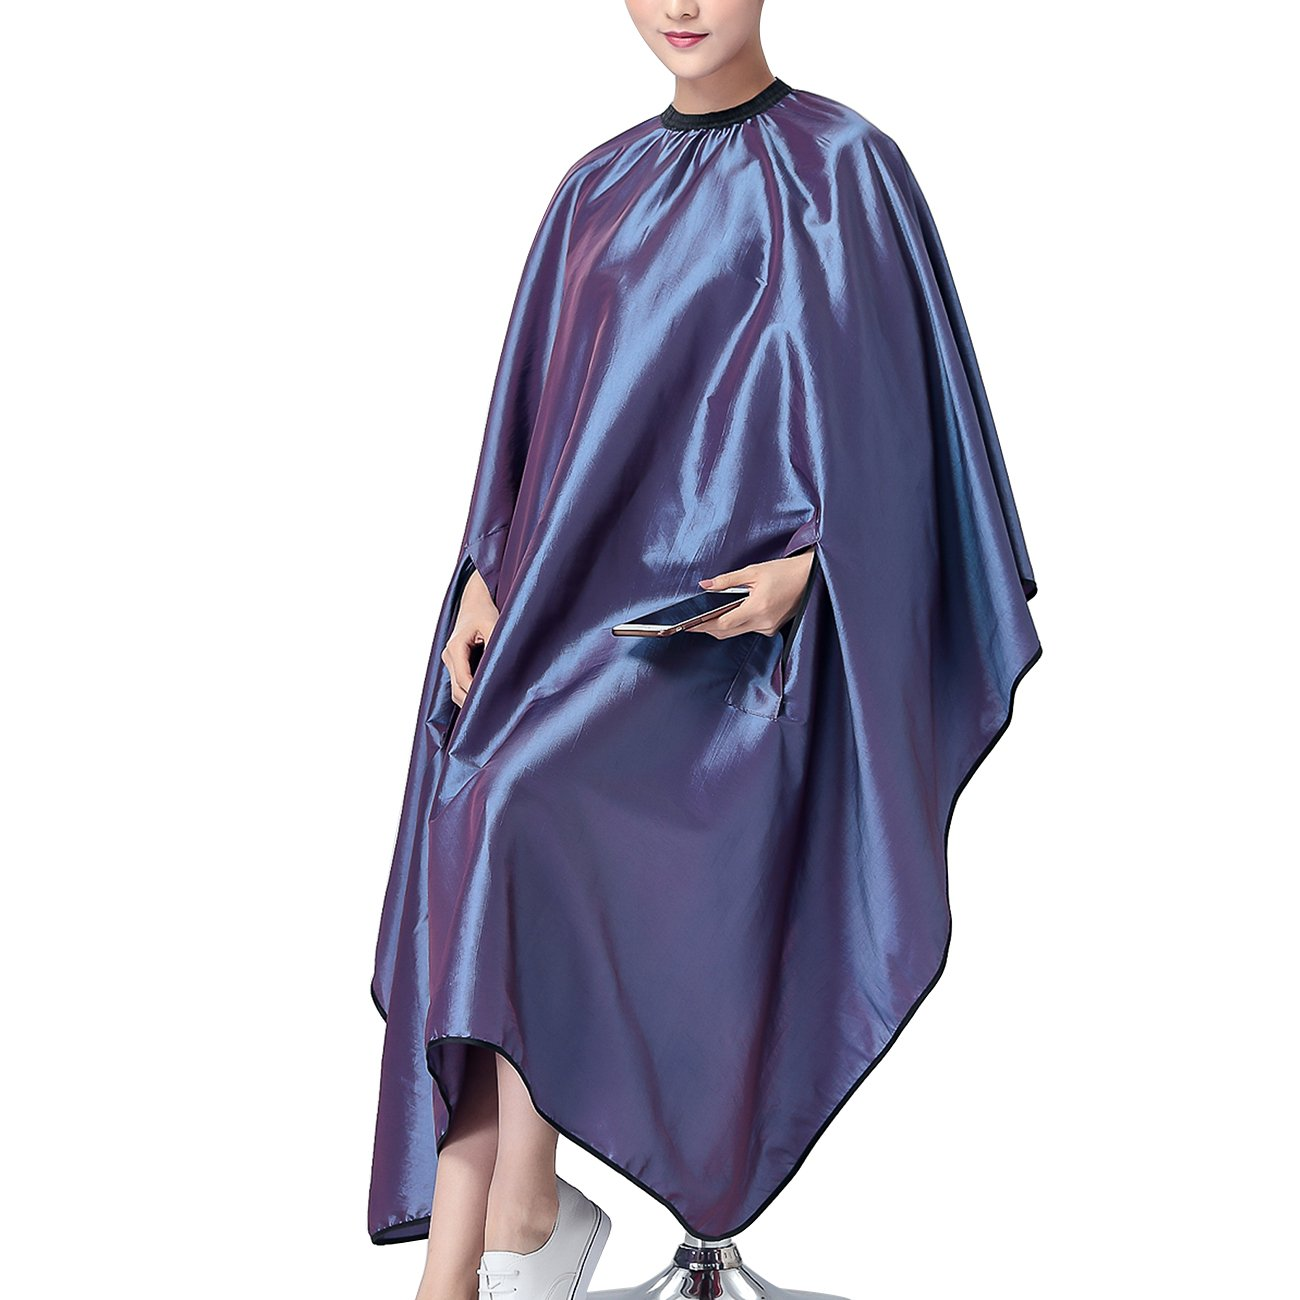 OLizee Hair Cut Hairdressing Cape Cloth Apron Stretch Out Hand Waterproof Salon Barber Gown 57 x 63'', (Purple) by OLizee